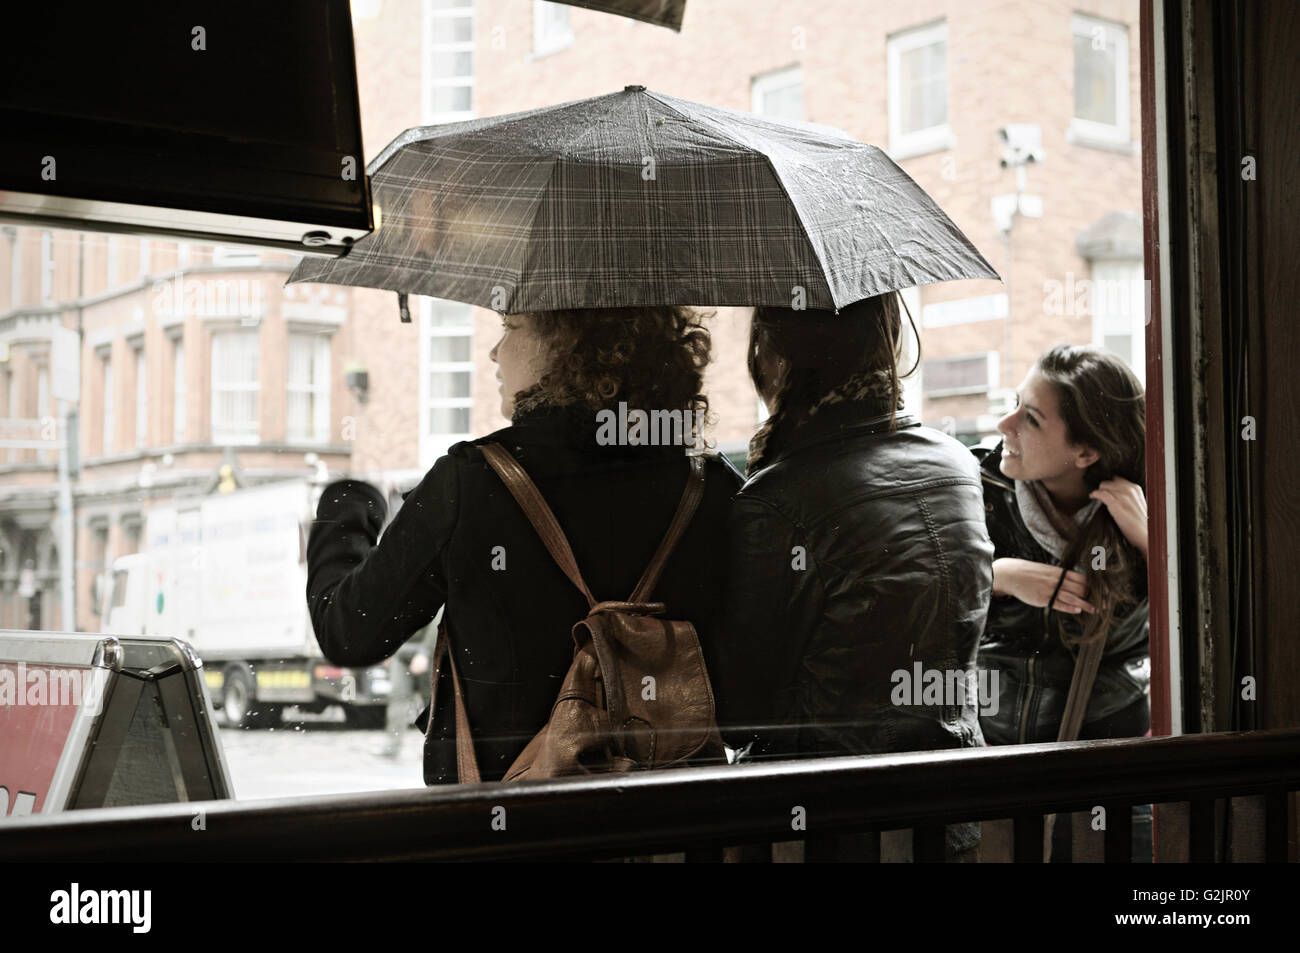 Young women with an umbrella during a shower seen from inside a restaurant in Dublin, Temple Bar quarter, Ireland Stock Photo